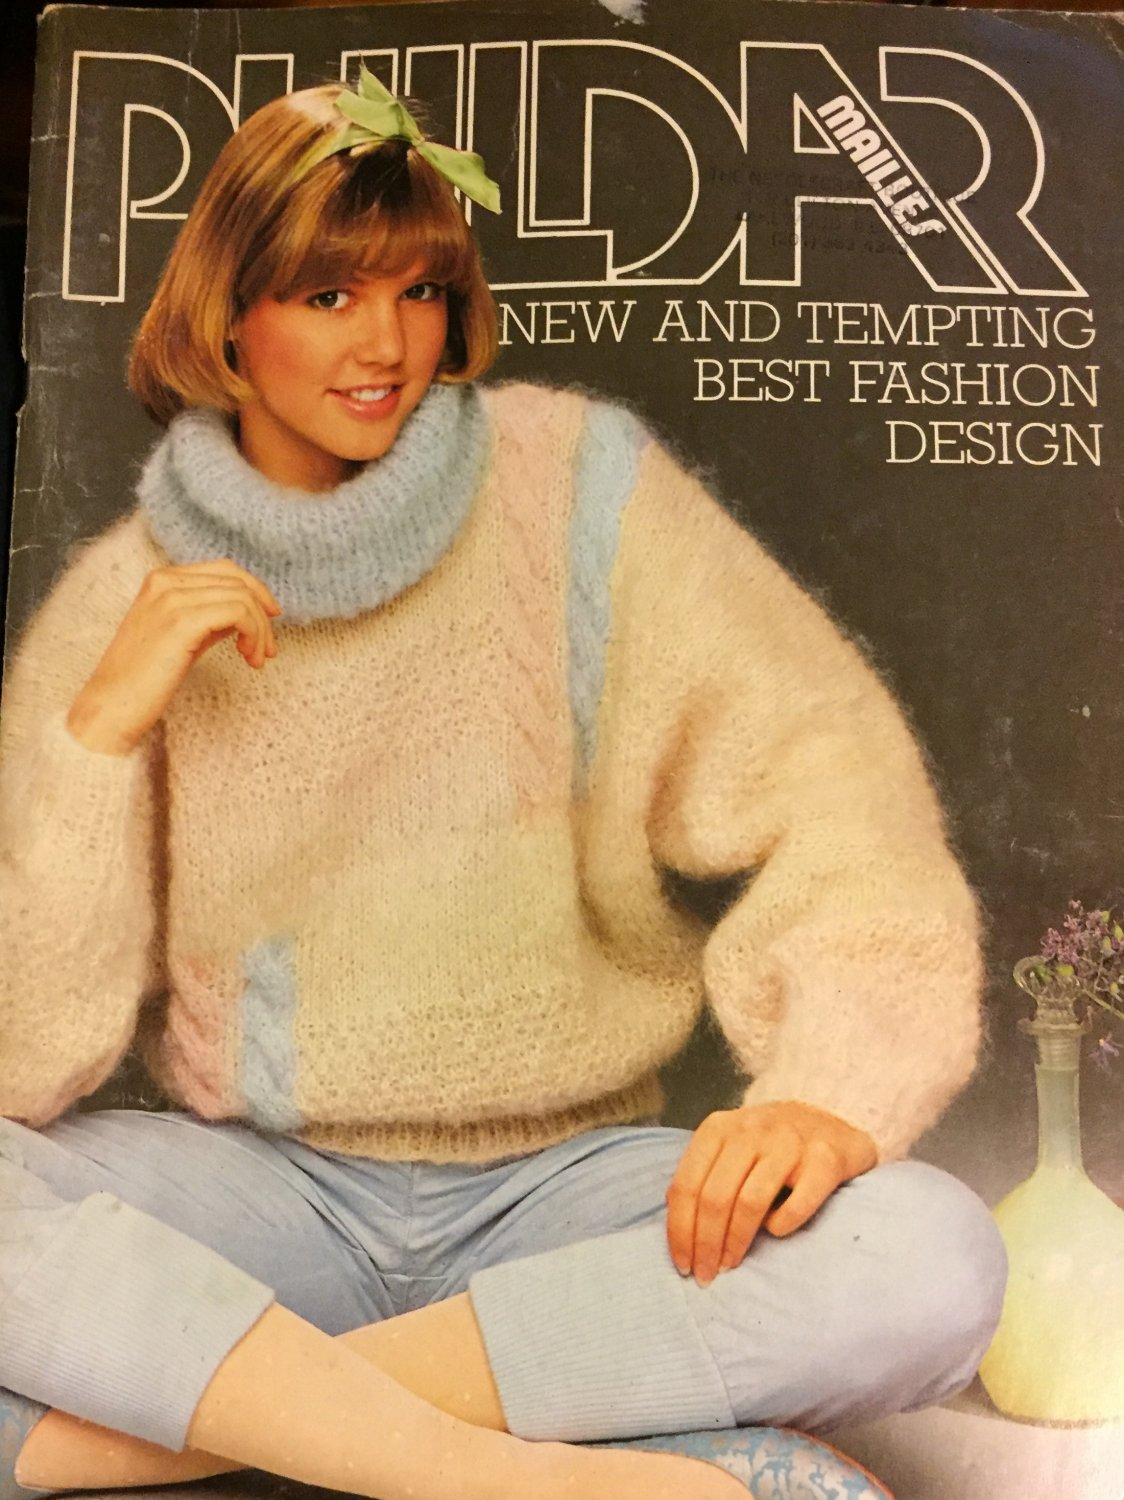 Phildar New and Tempting Best Fashion Design Knitting Patterns